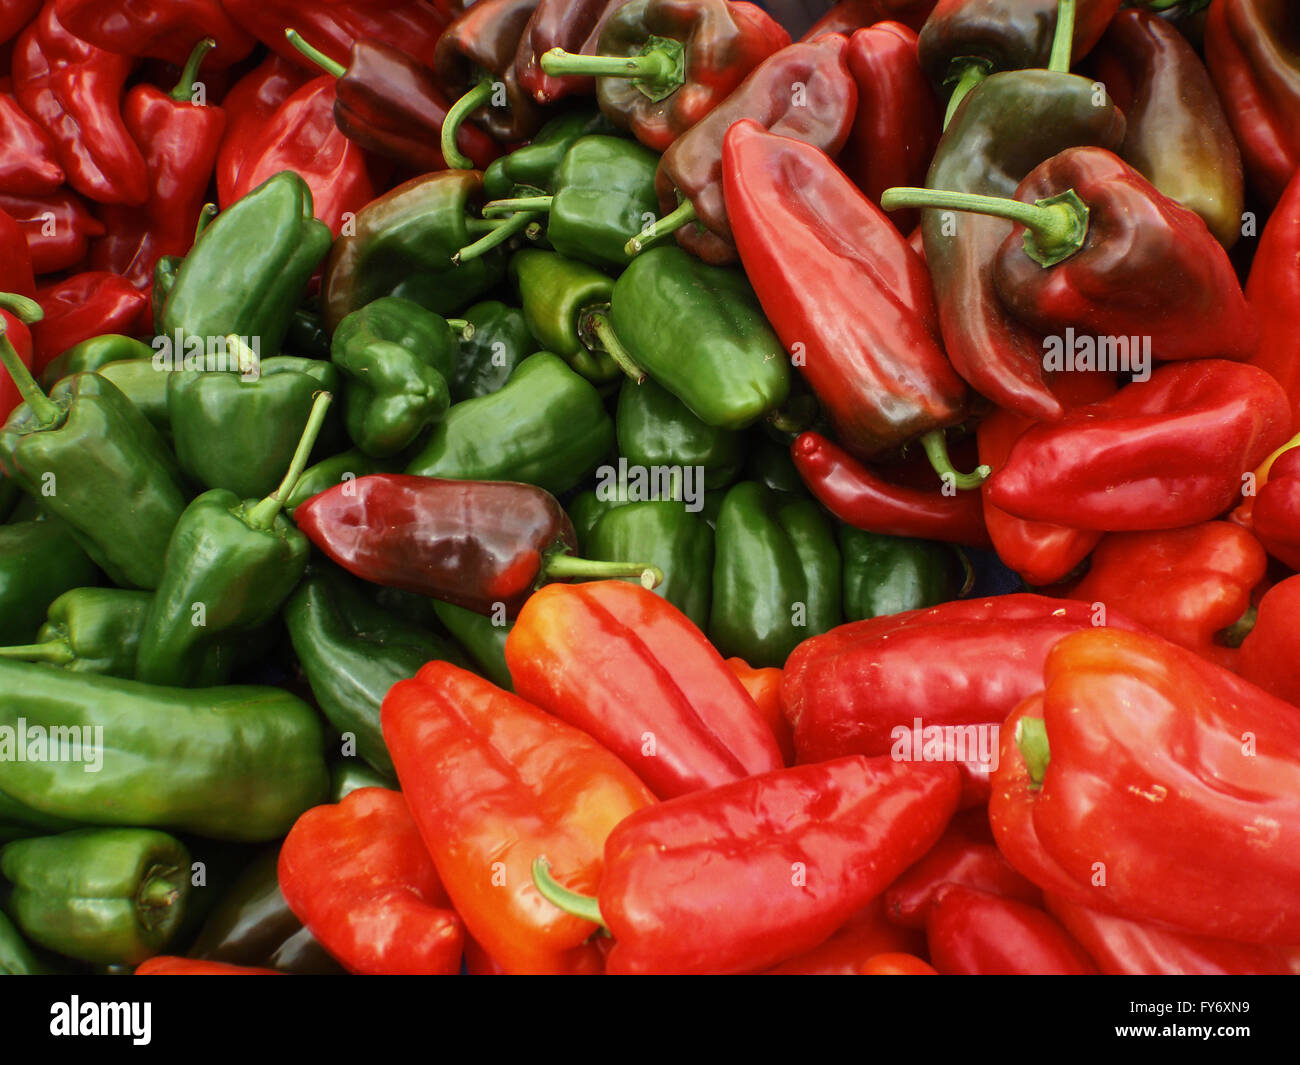 Large Red and Green Organic pointy Peppers on display at a farmers market in San Francisco - Stock Image